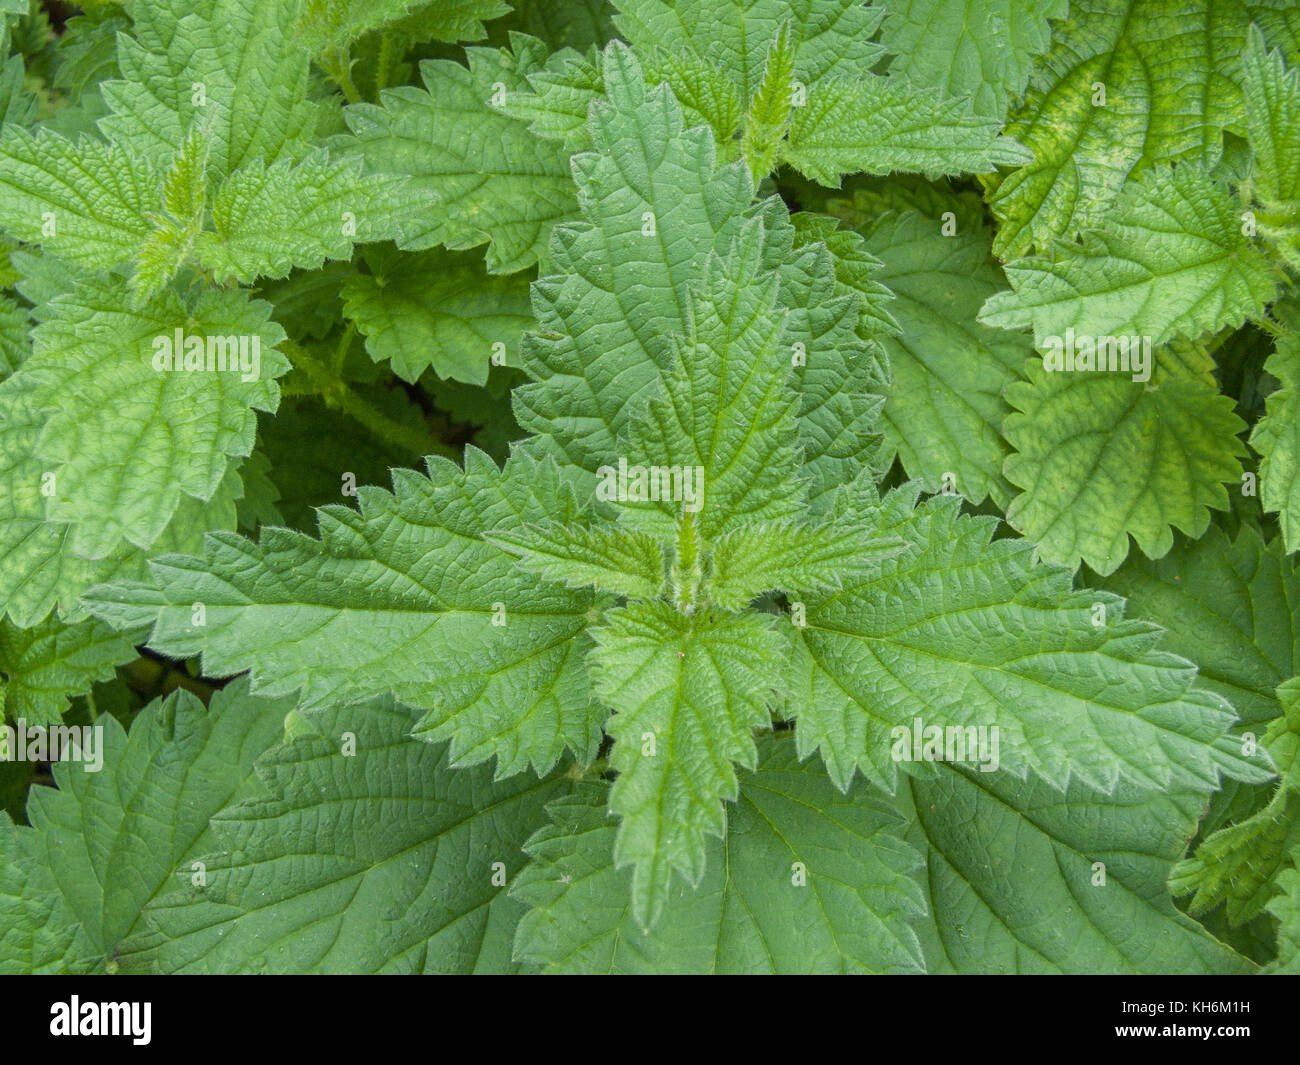 Common Stinging Nettle (Urtica dioica) - used as a foraged wild vegetable green once cooked, and was also used in - Stock Image